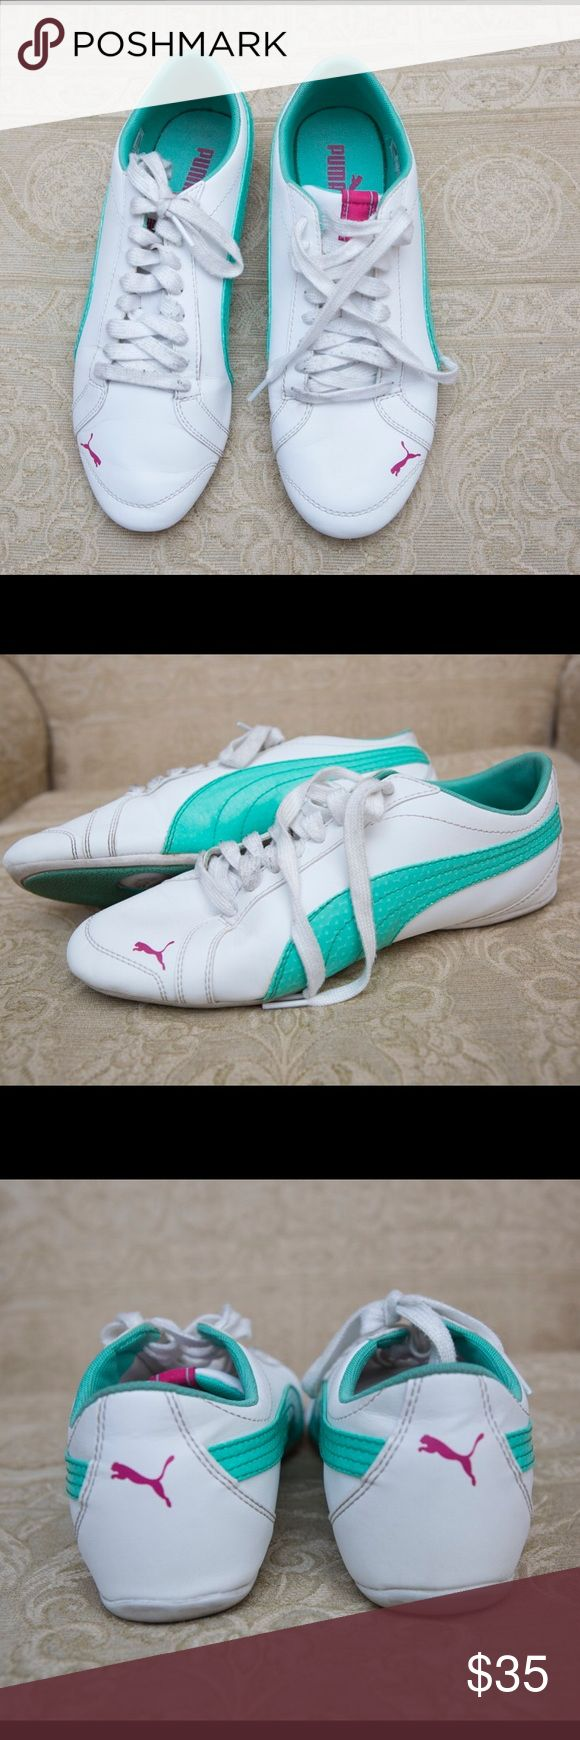 White/teal/pink Pumas in excellent condition Comfortable and stylish athletic shoes. Fit true to size. Puma Shoes Sneakers